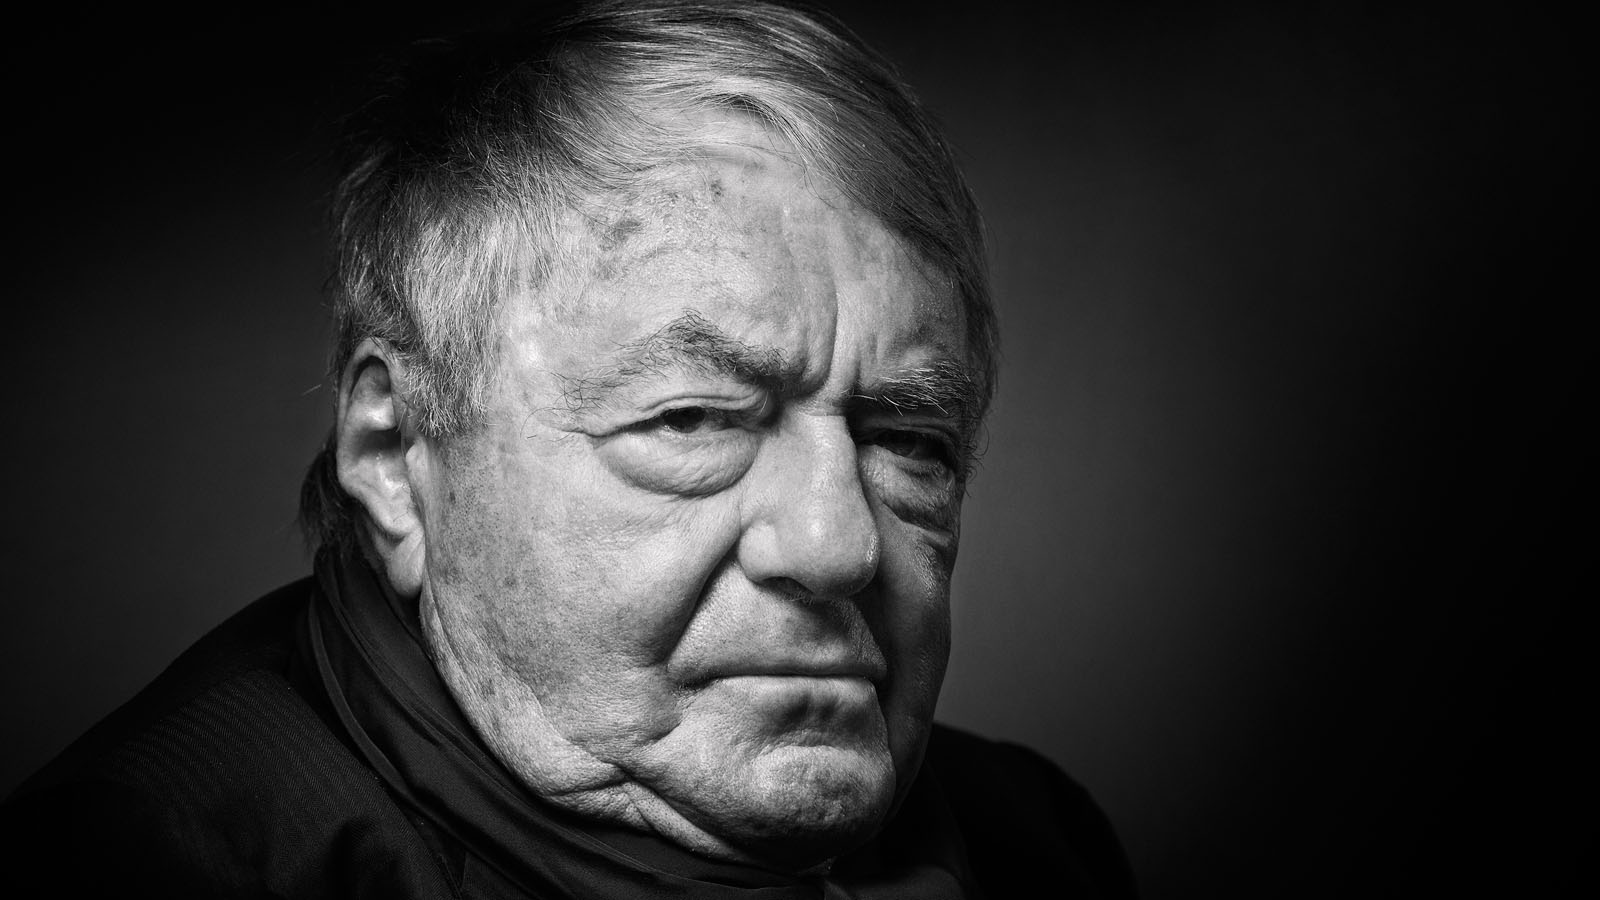 The Criterion Collection   The Current   Remembering Claude Lanzmann Claude Lanzmann  who passed away on Thursday at the age of ninety two   spent over a decade of his remarkably eventful life working on Shoah   1985